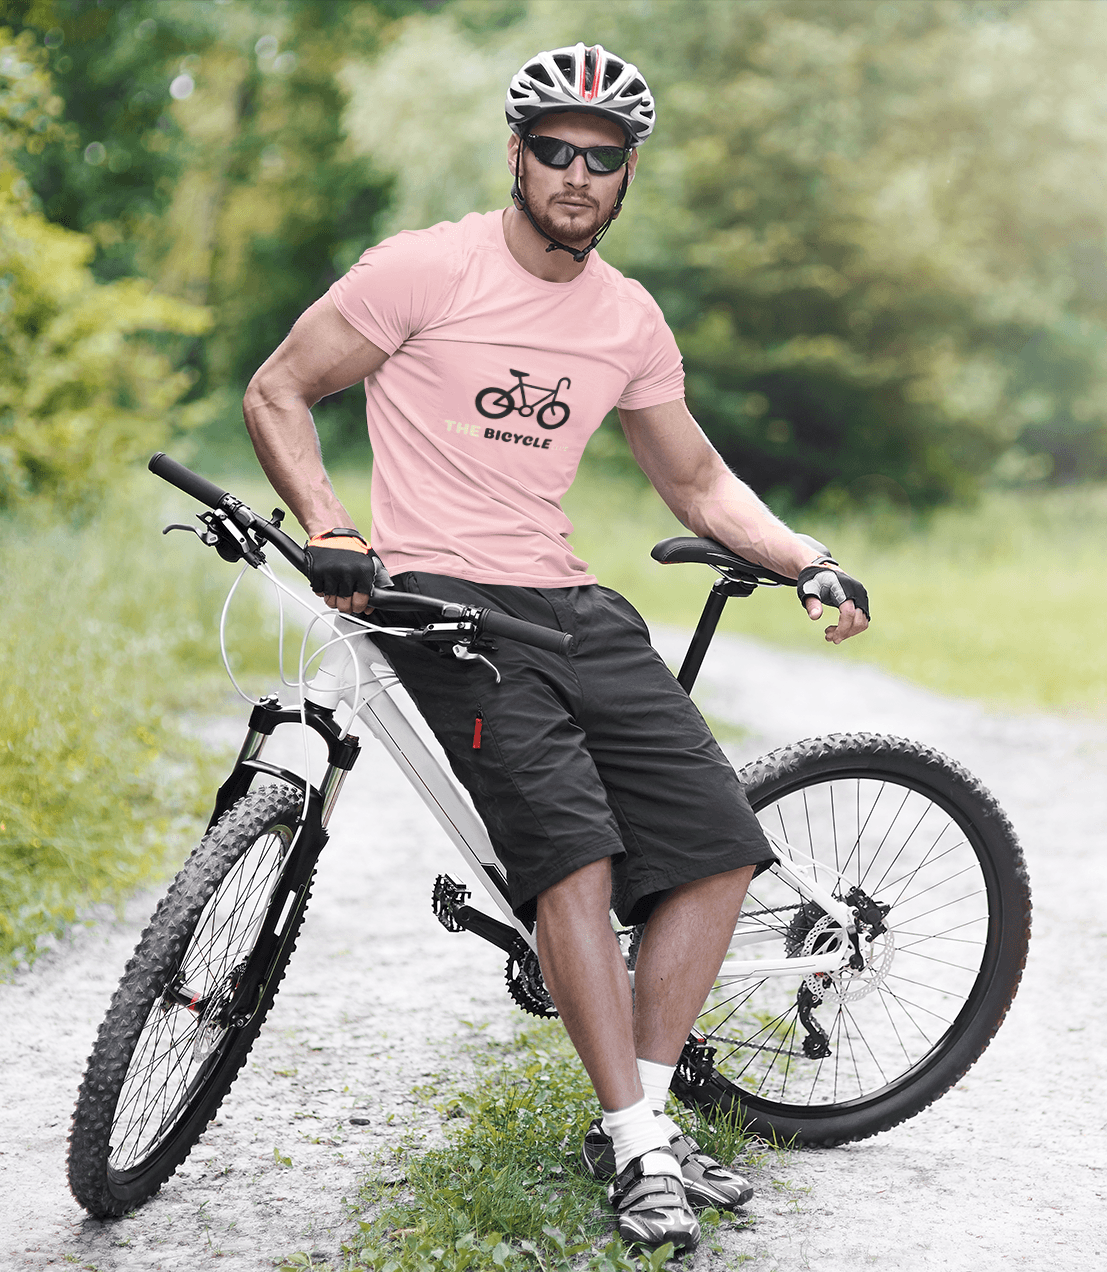 Bicycle Club Clothing Printrove